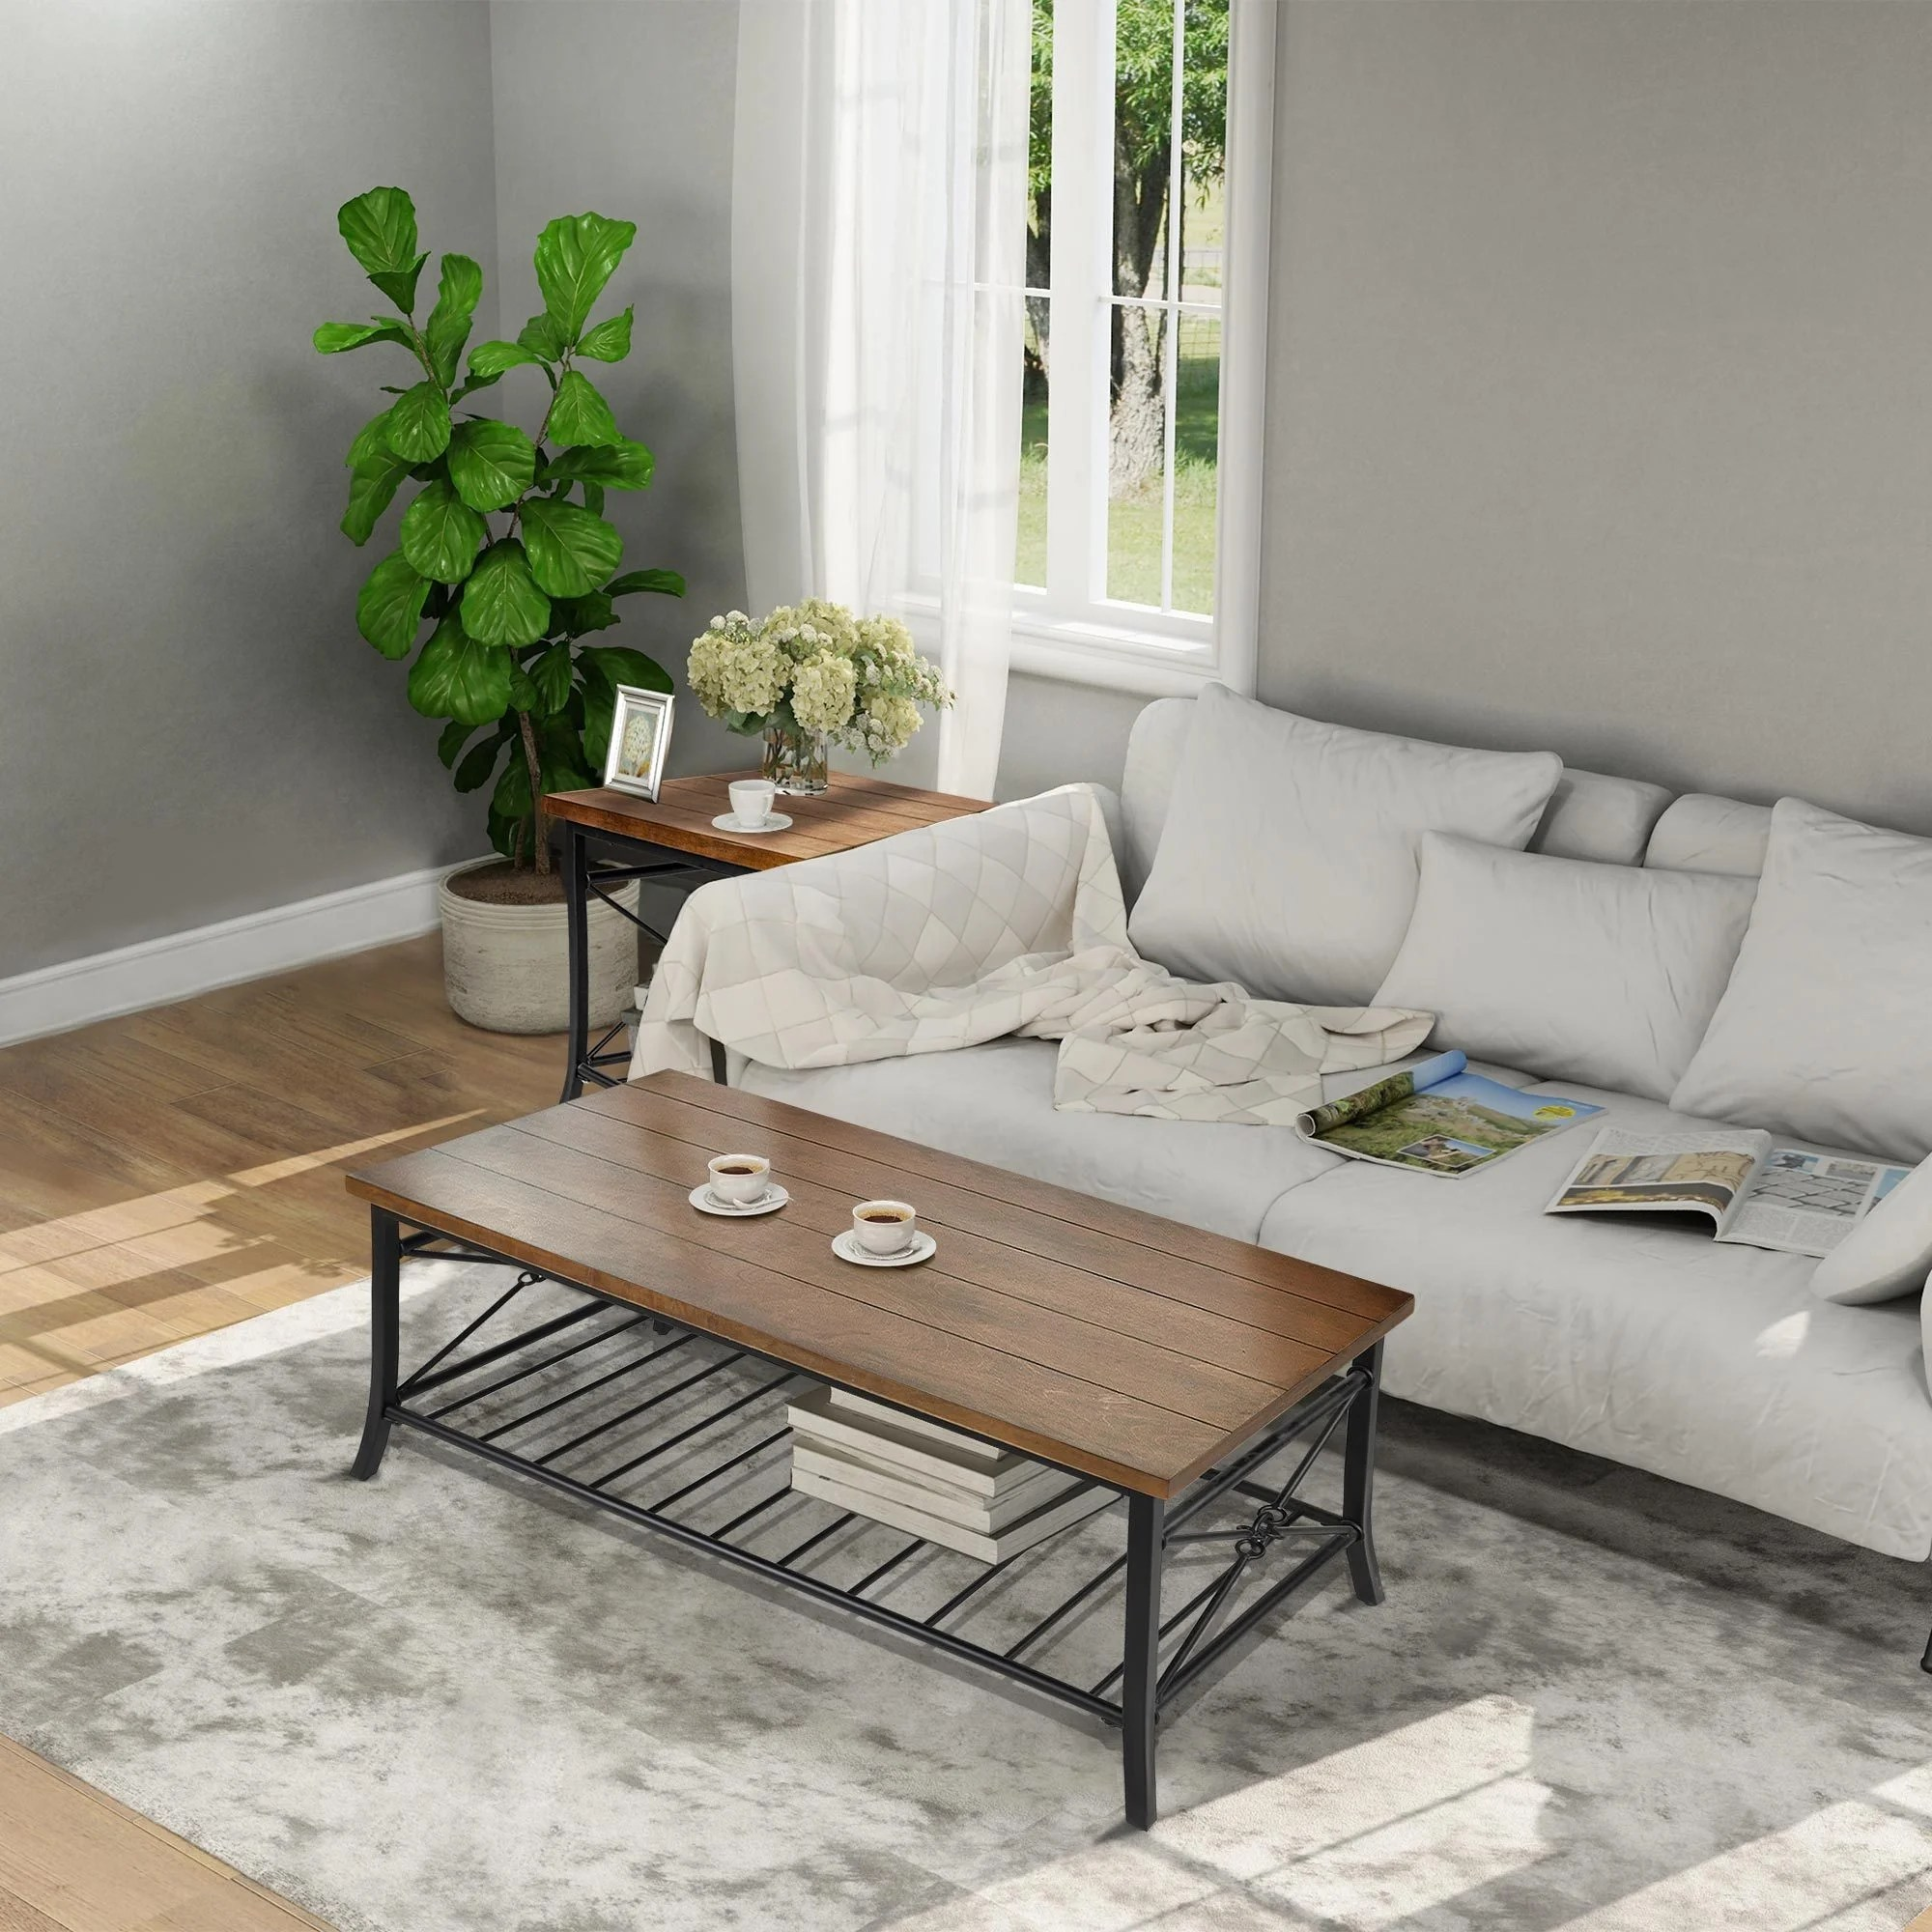 modern farmhouse wood coffee table sets with metal storage shelf 1 coffee table 2 side tables